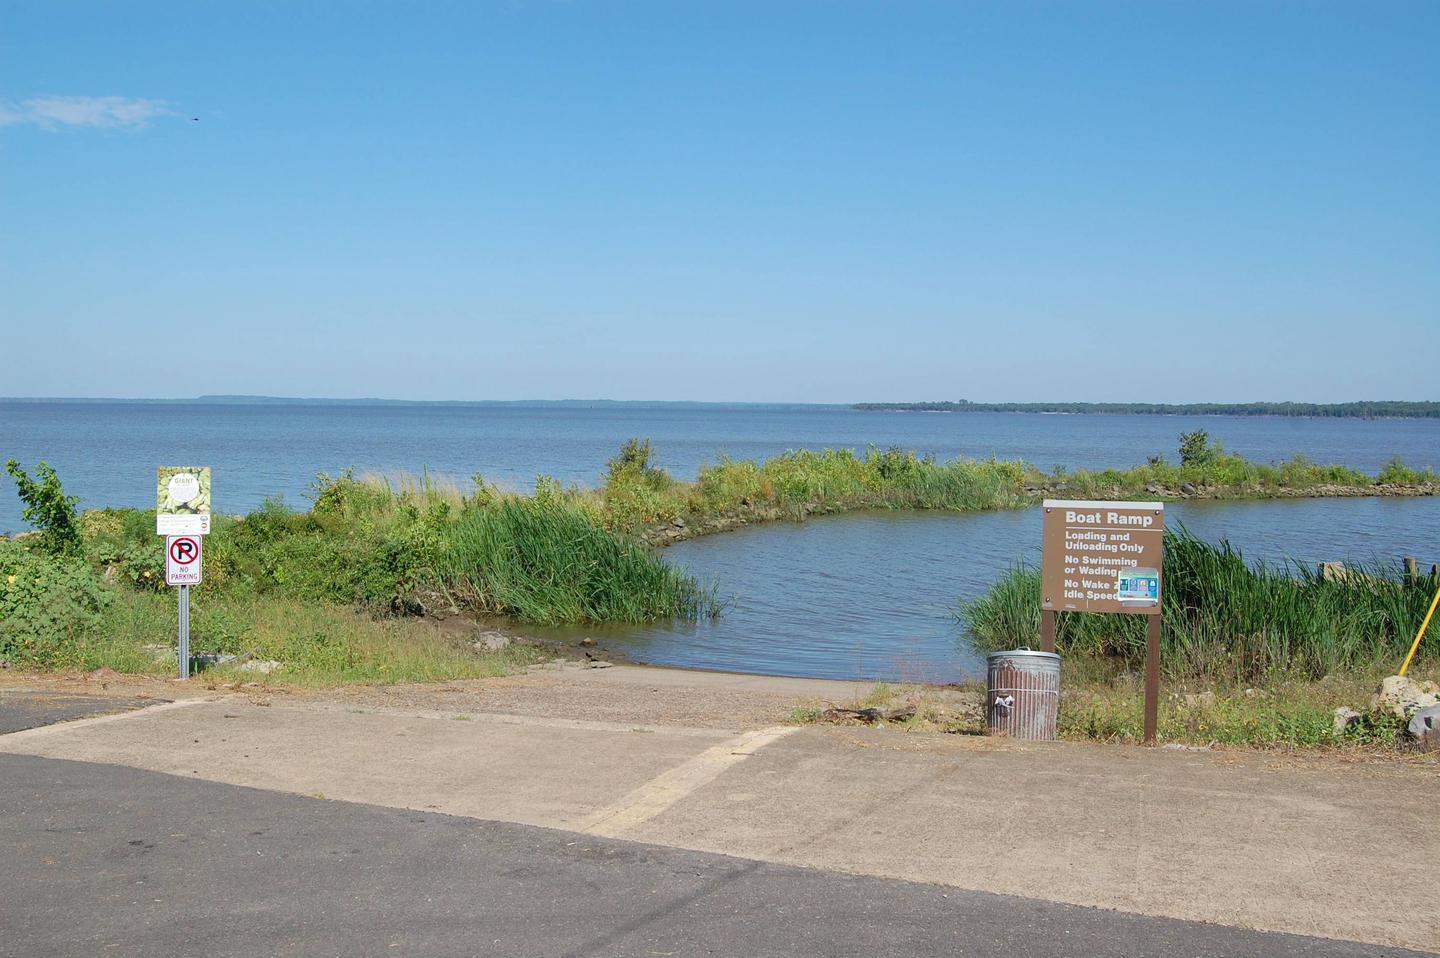 South Boat Ramp